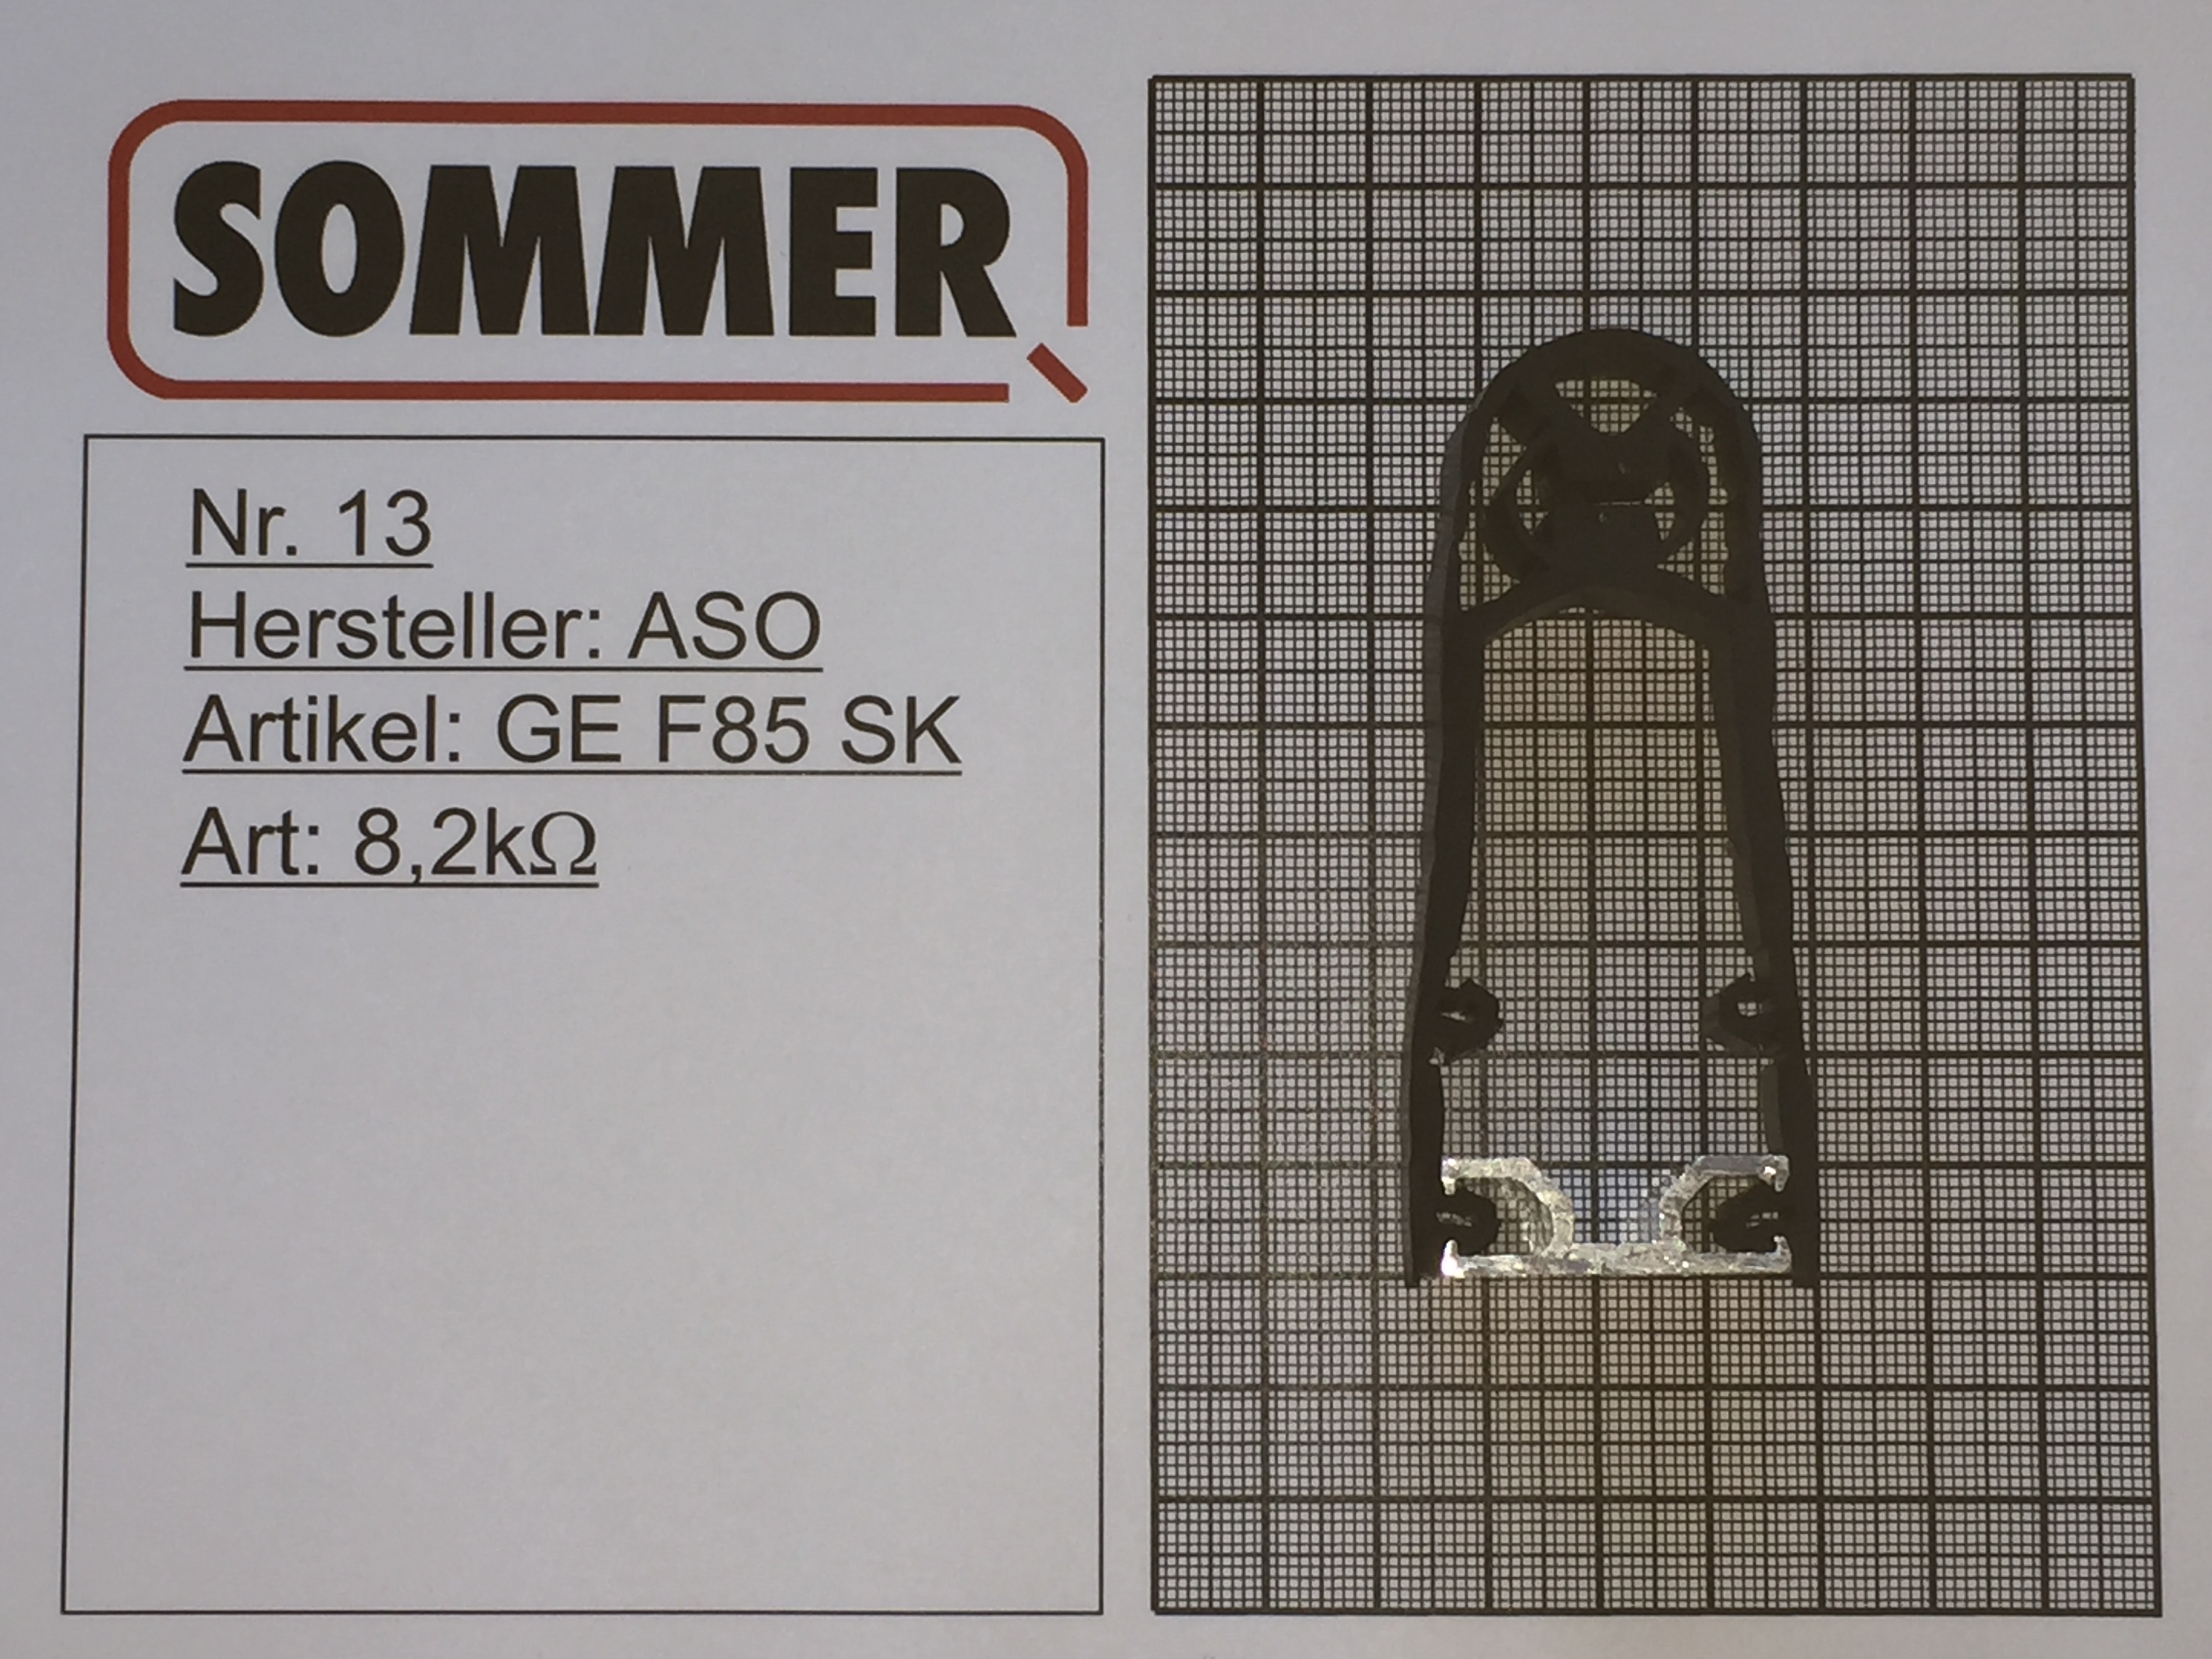 Certifications - SOMMER Door & Gate Automation UK Ltd